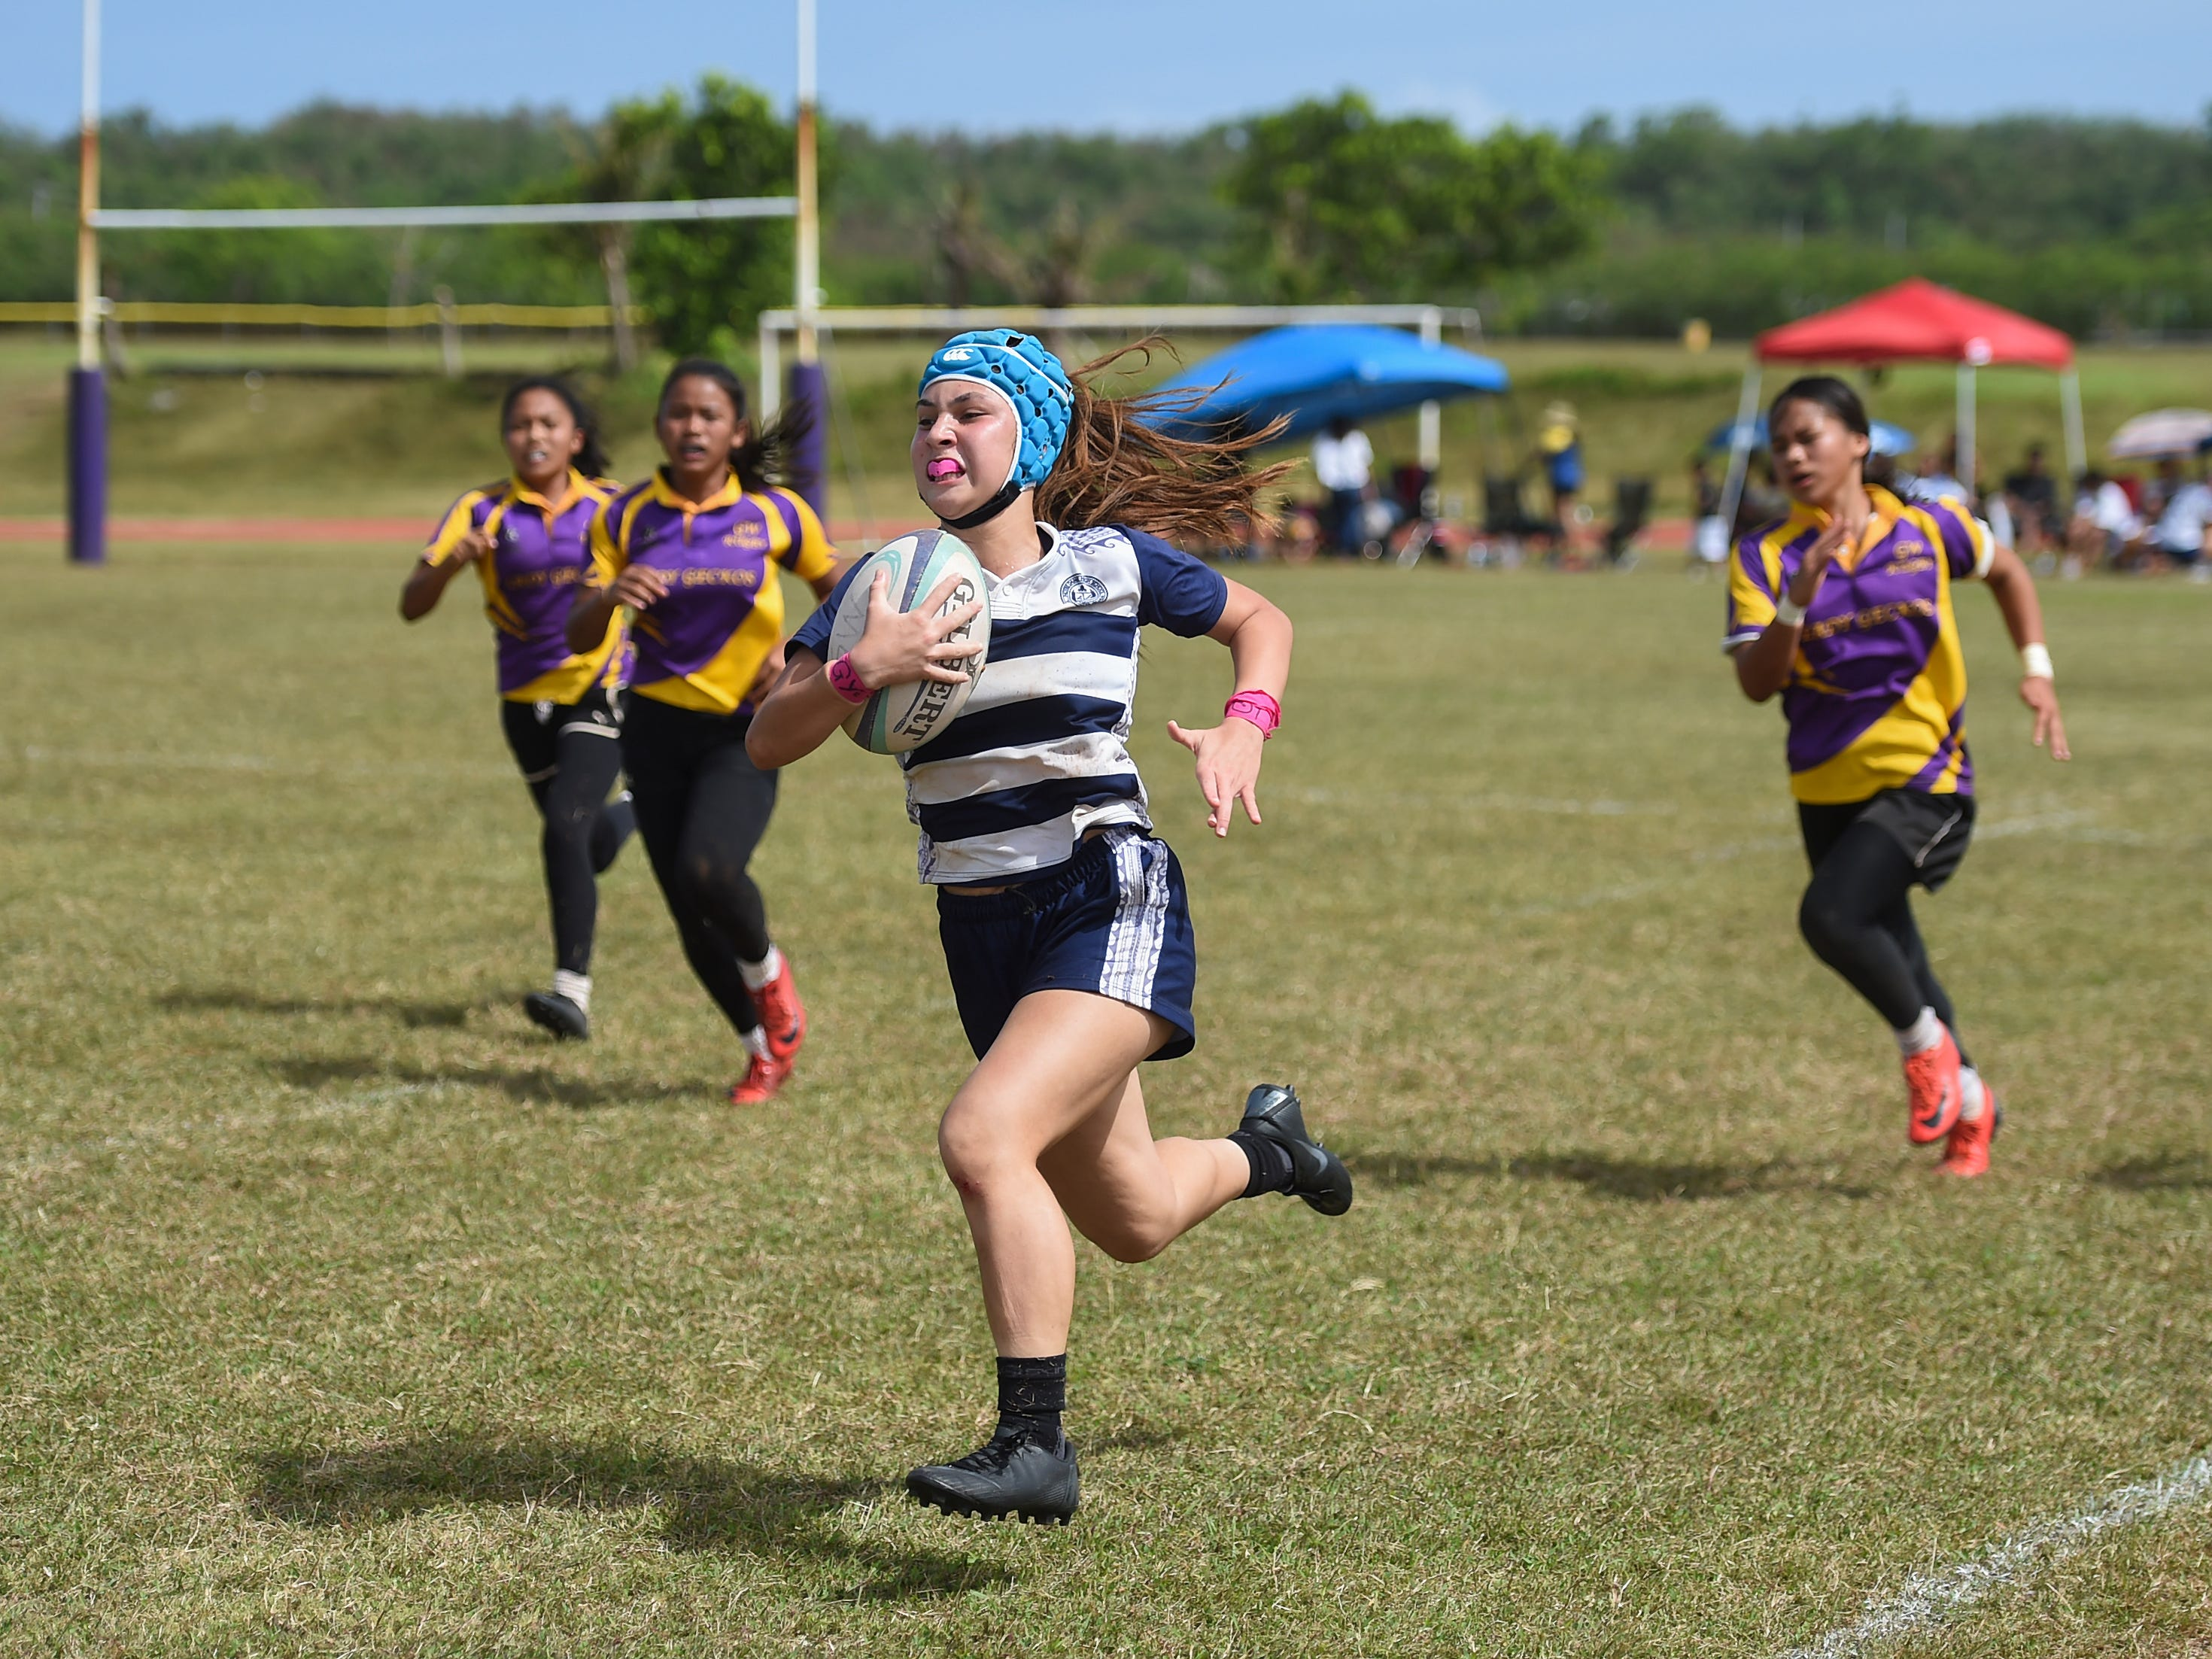 Notre Dame's Faith Moylan sprints down the sideline against the George Washington Geckos during their GRFU/IIAAG Girls Rugby Finals game at the GW High School Field in Mangilao, March 16, 2019. The Royals went on to beat the Geckos 21-17 for the rugby title.